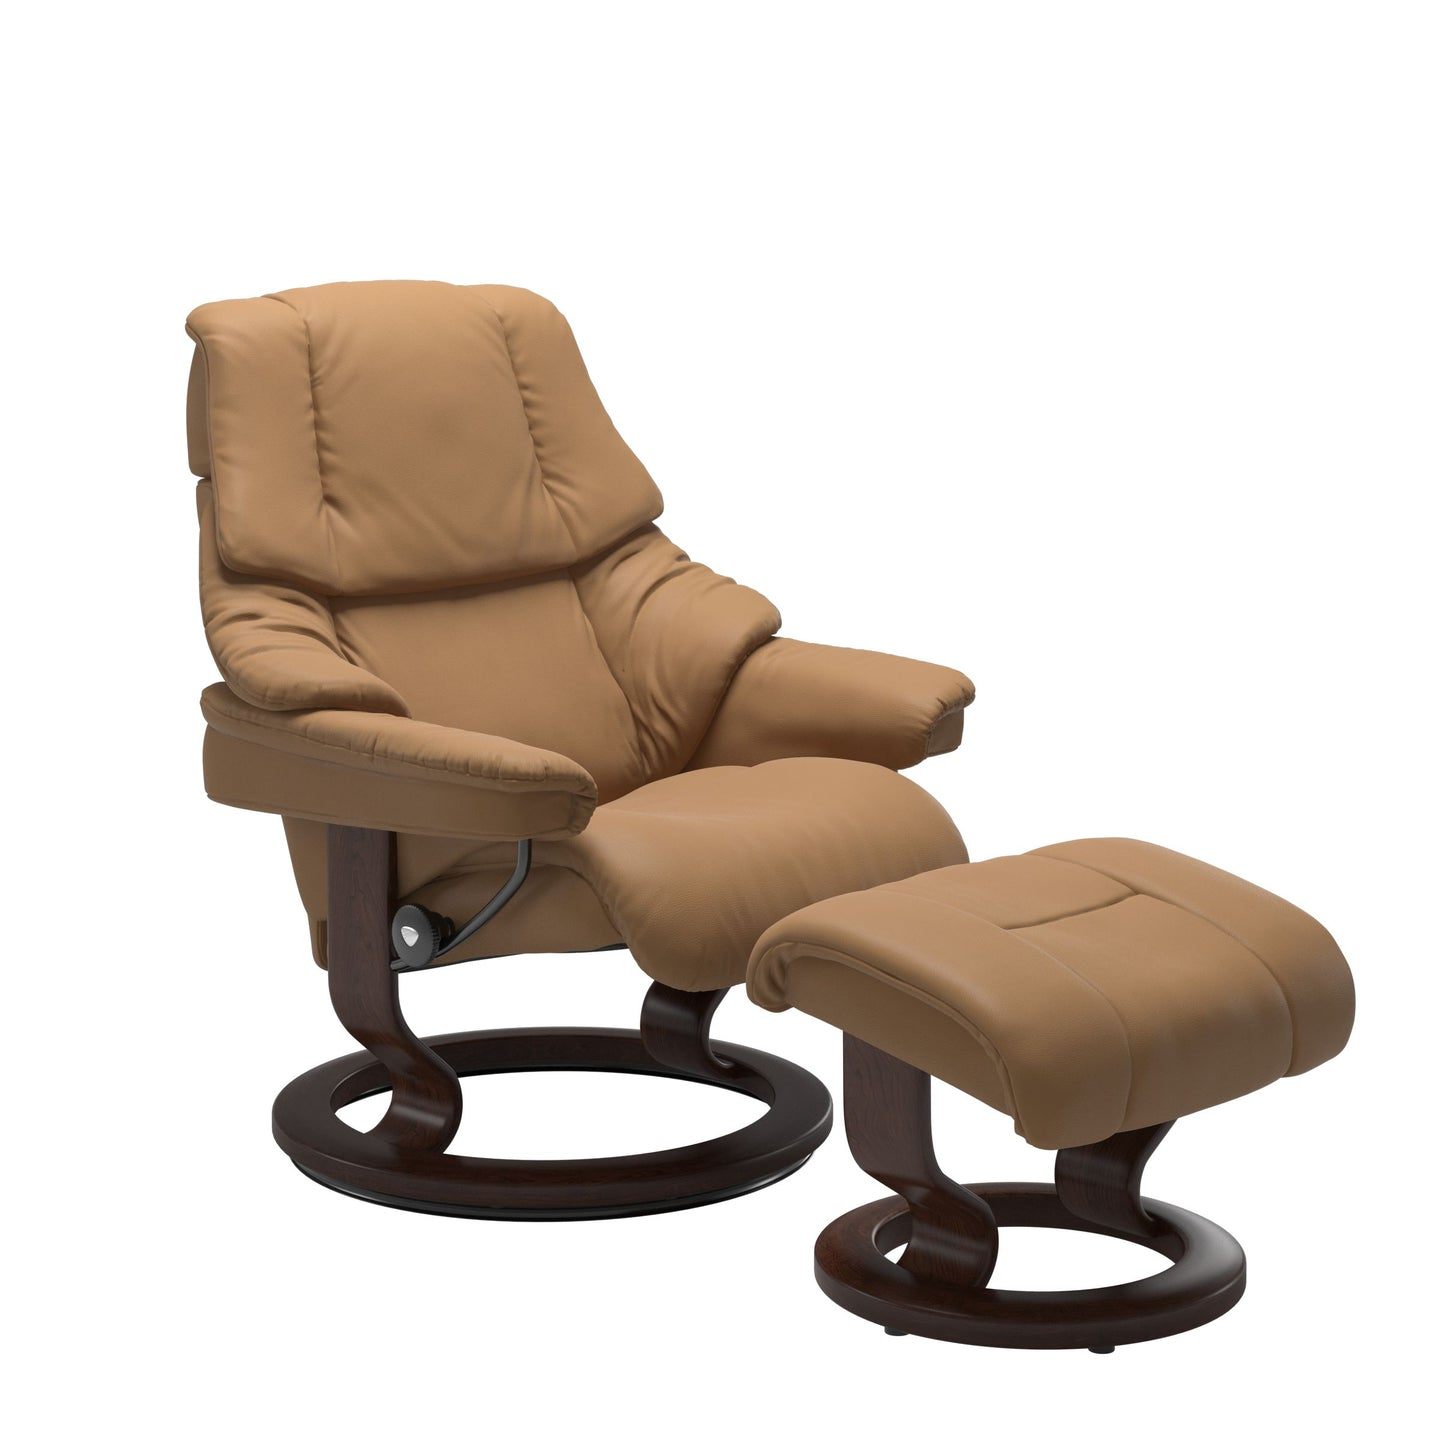 Reclinable Stressless Reno